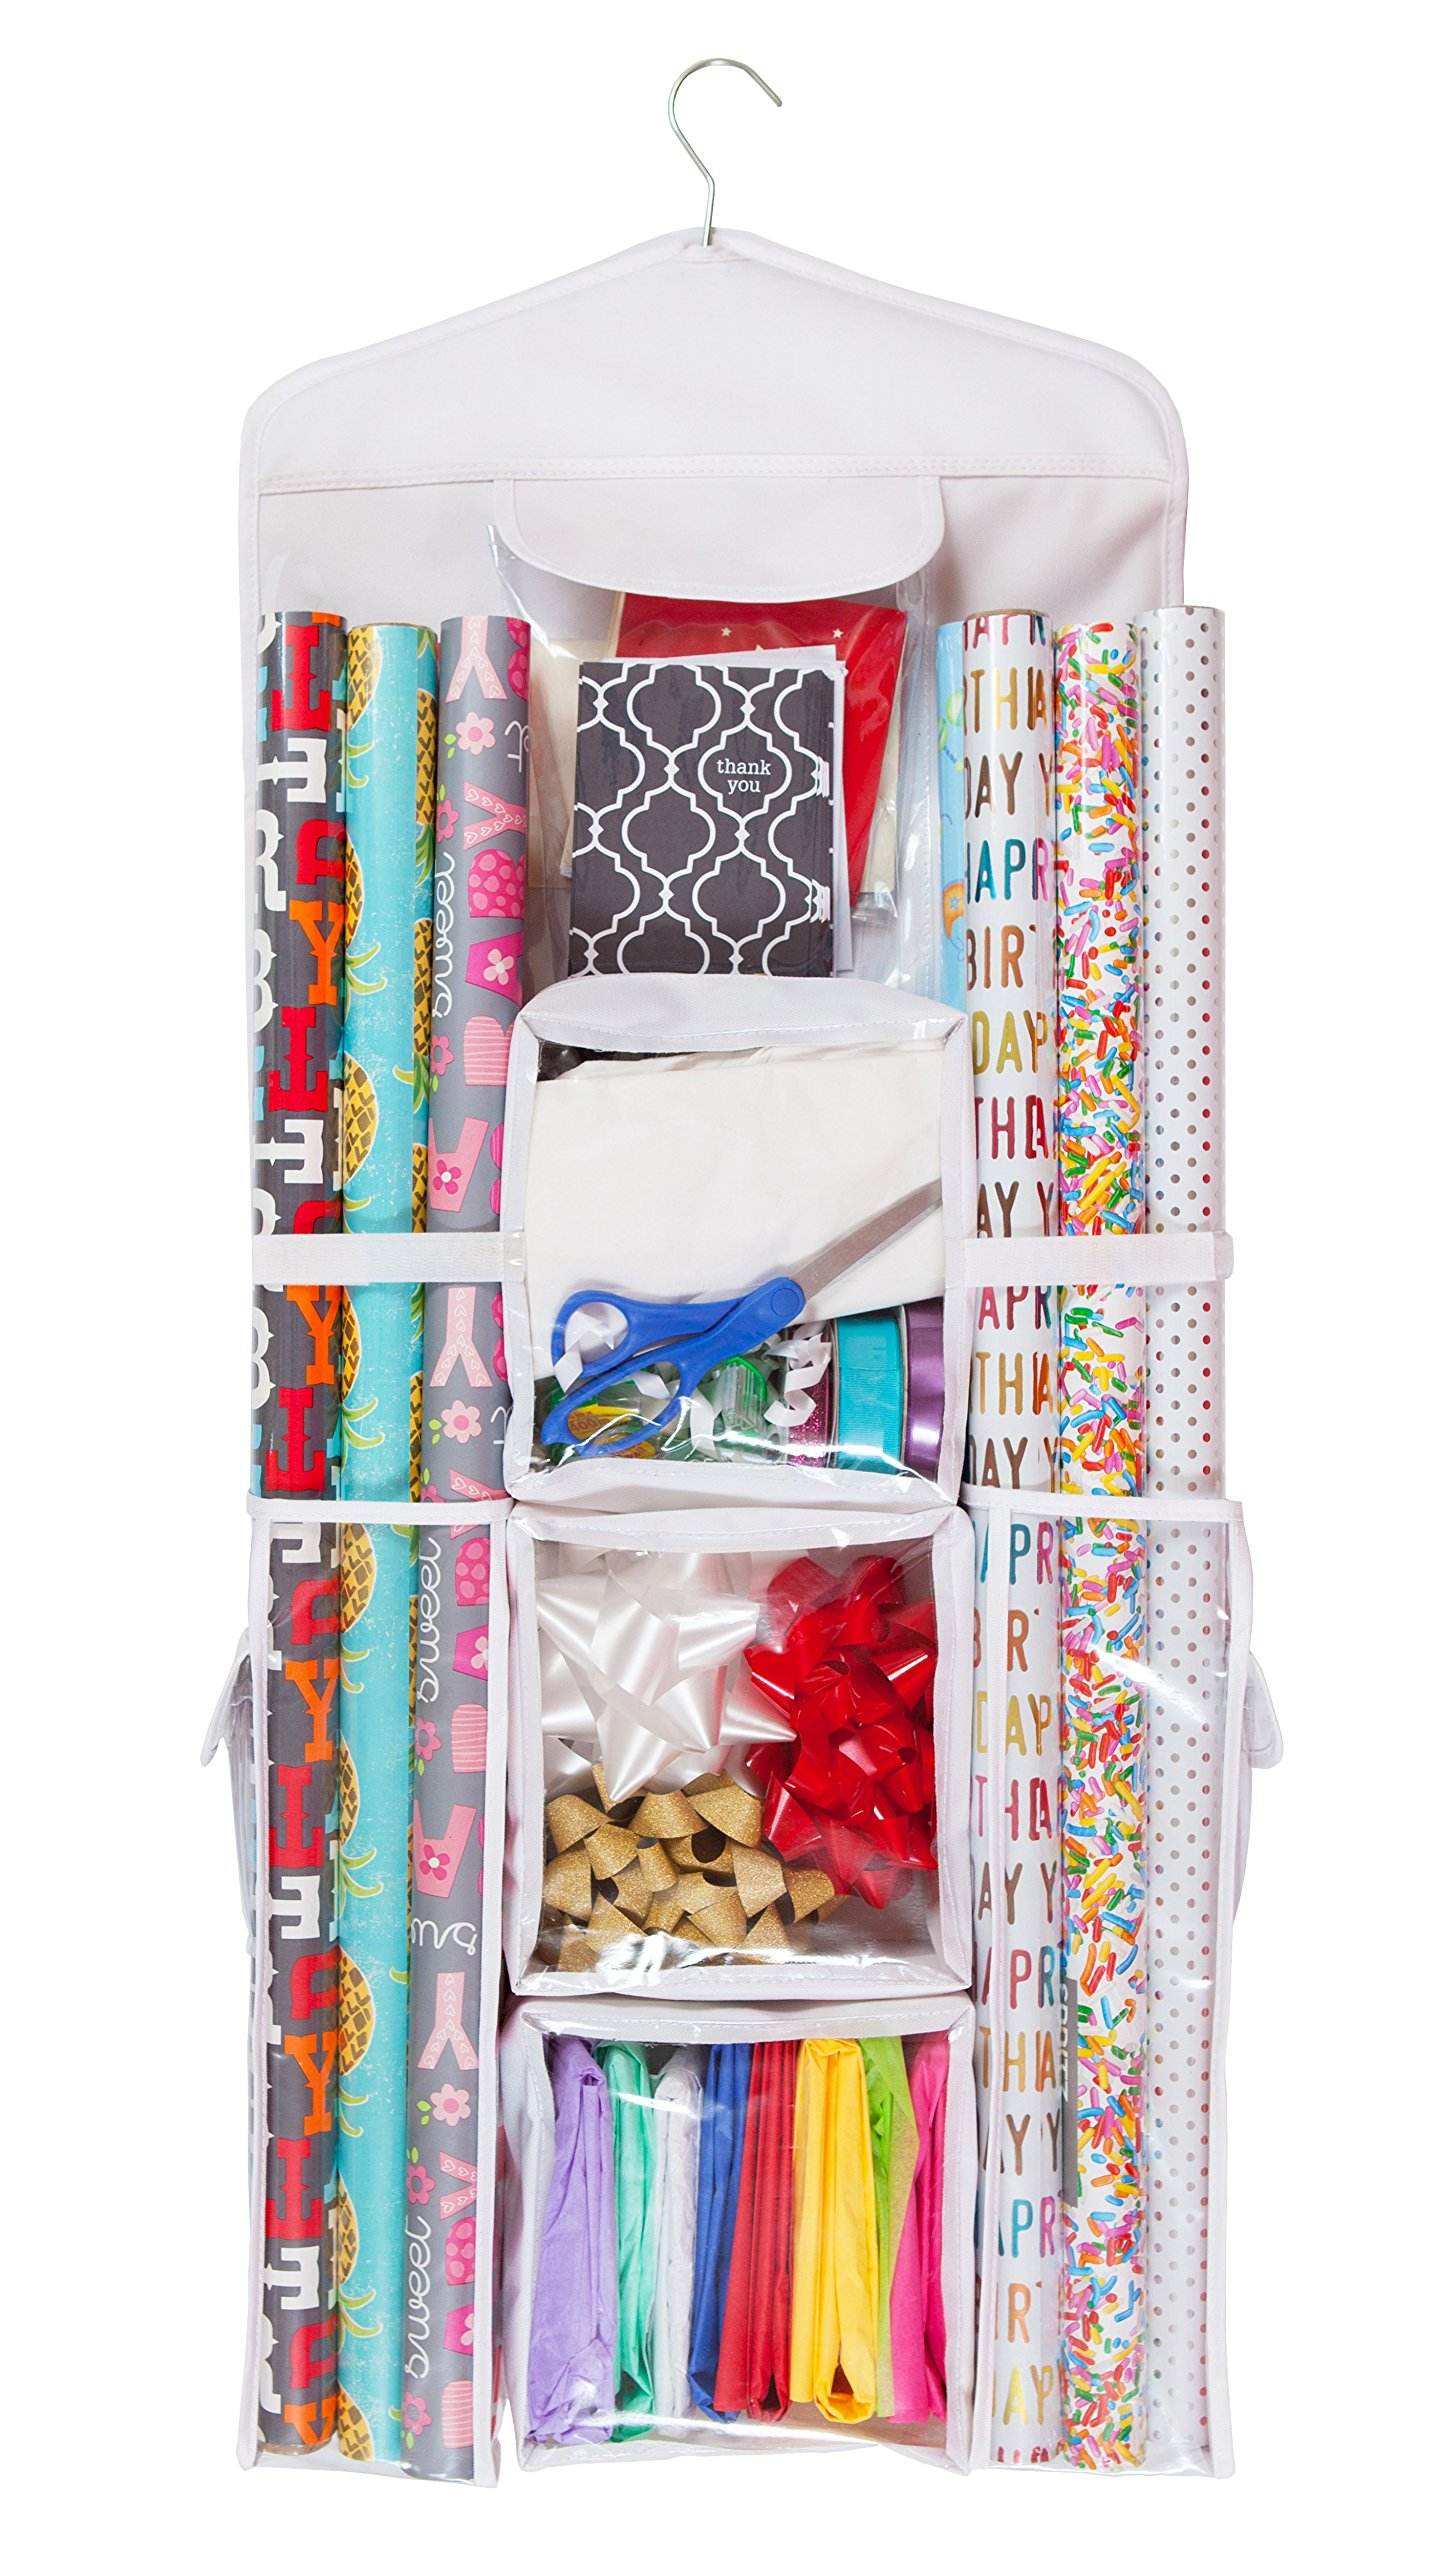 Double Sided Hanging Gift Wrap & Bag Organizer Storage by Organizer Designs